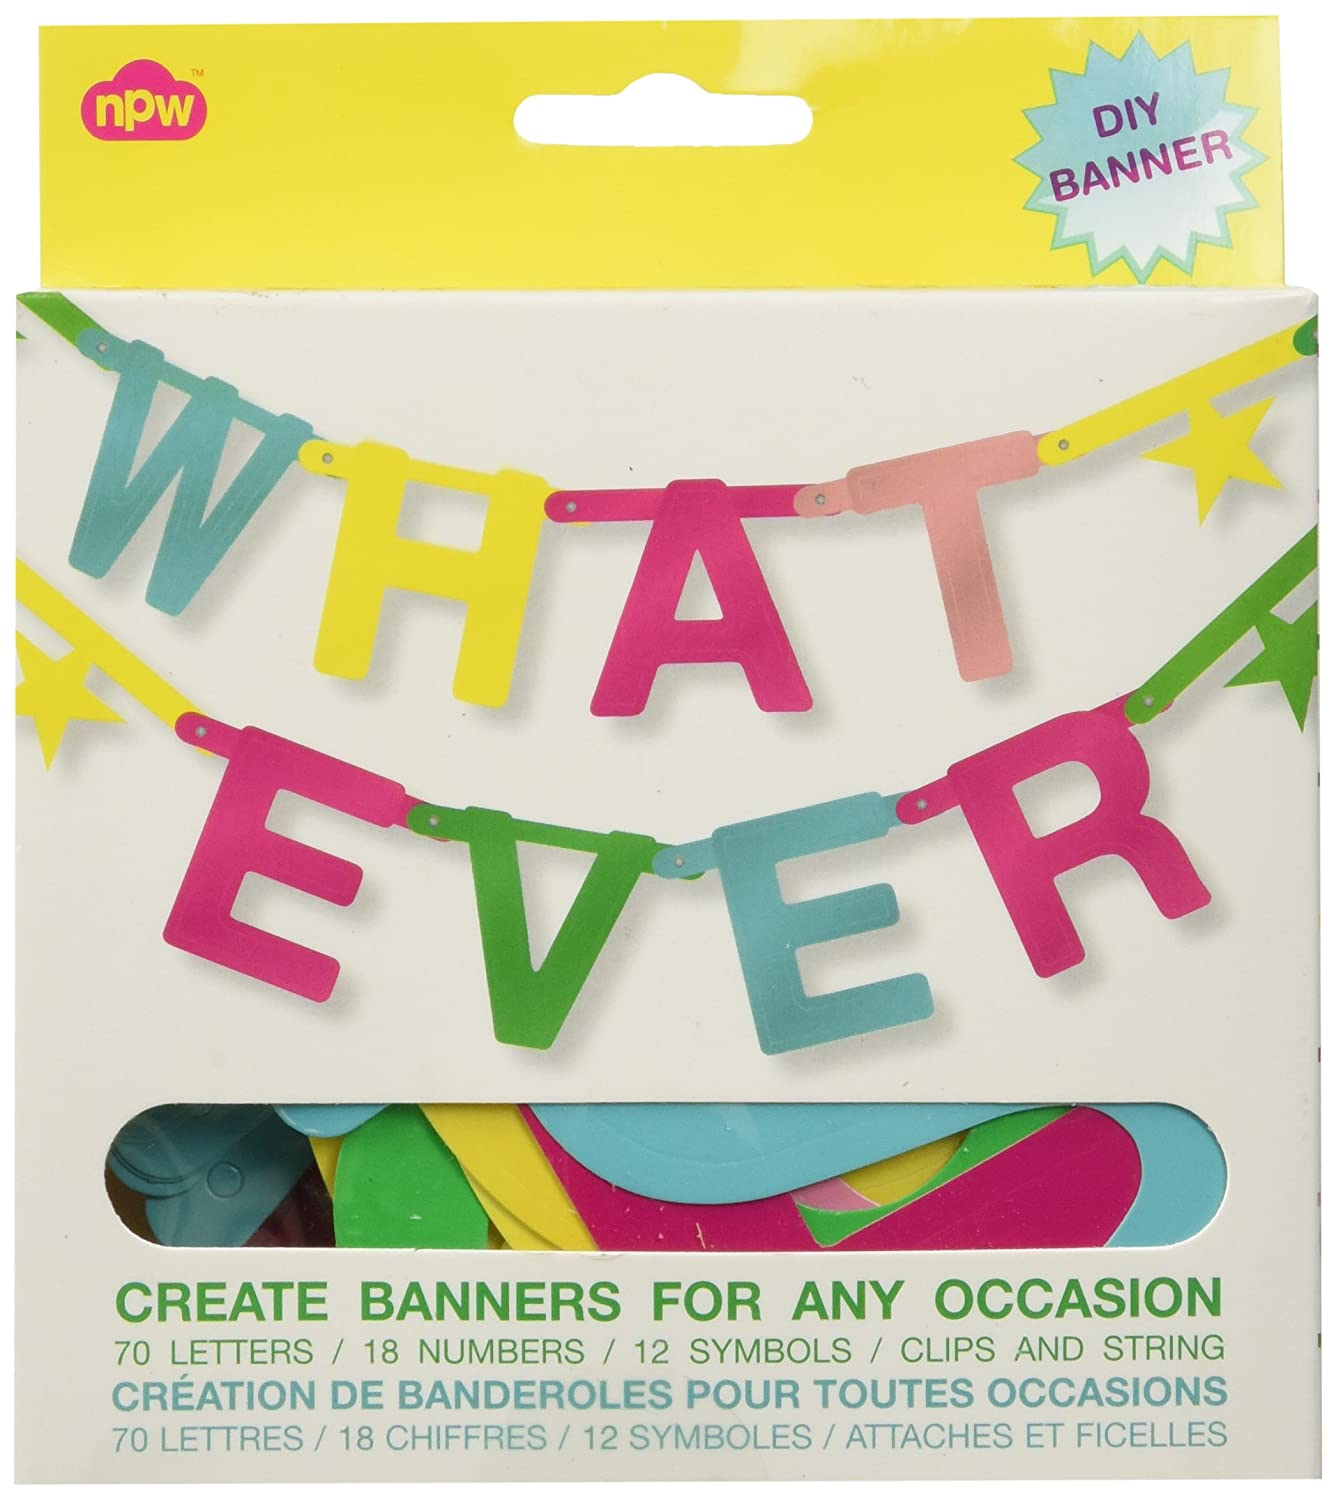 NPW W7541 Whatever Make Your Own Banner Kit no size Multicolor